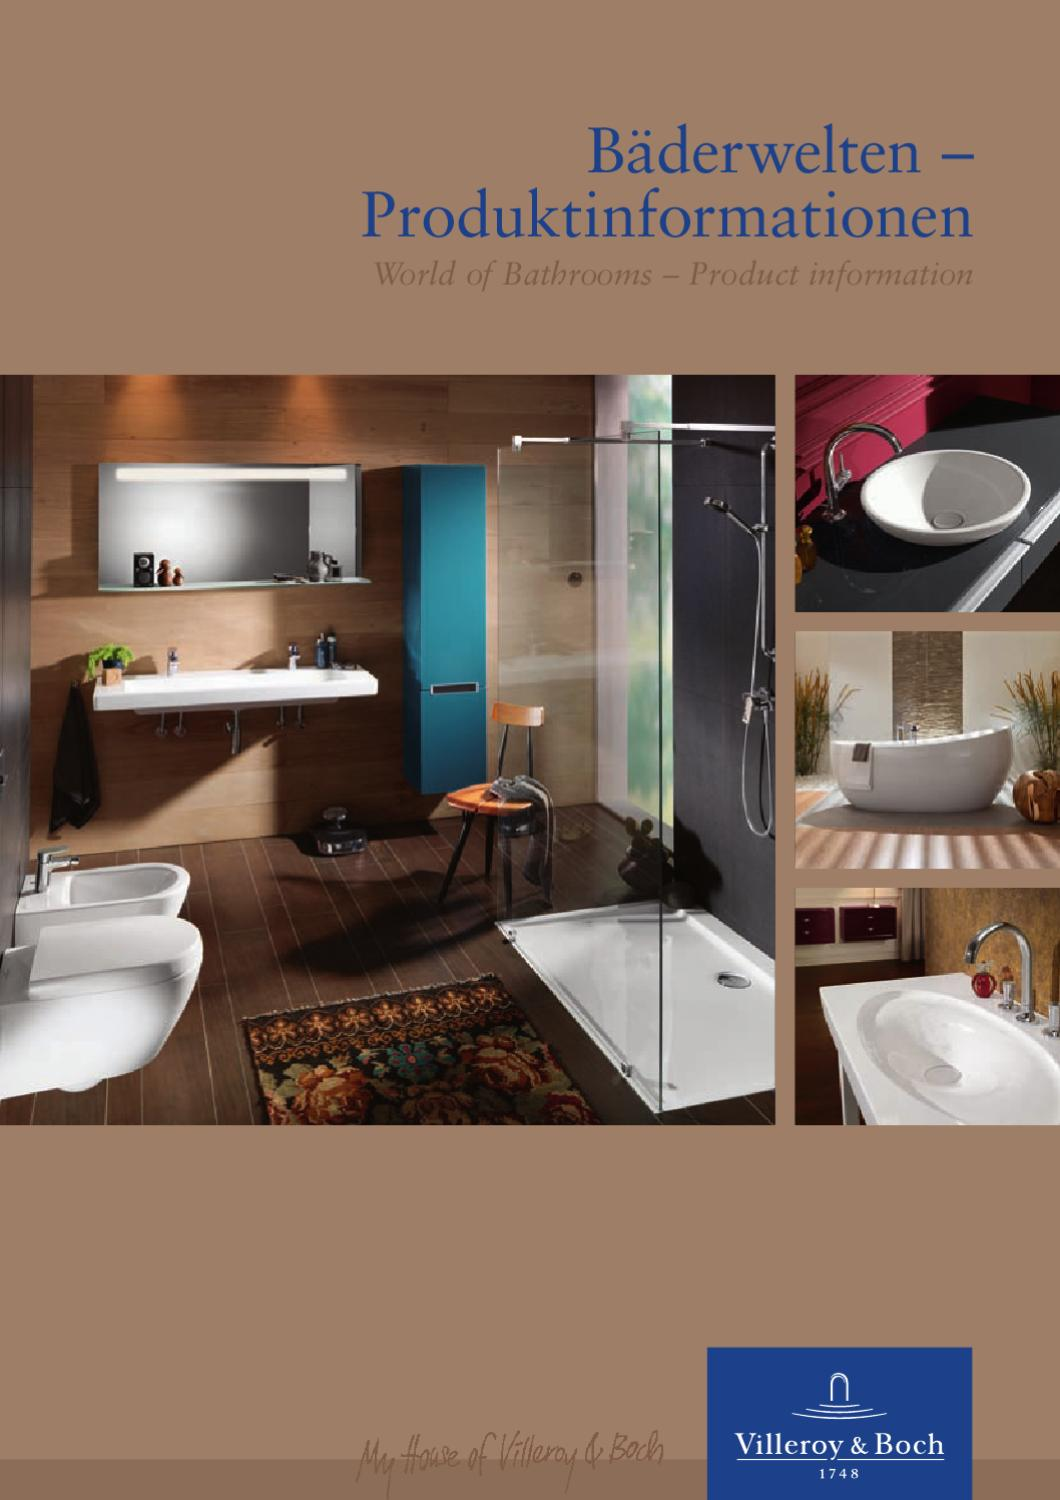 Doppelwaschtisch Mit Nur Einem Wasseranschluss World Of Bathrooms Product Information By Home Deluxe Issuu